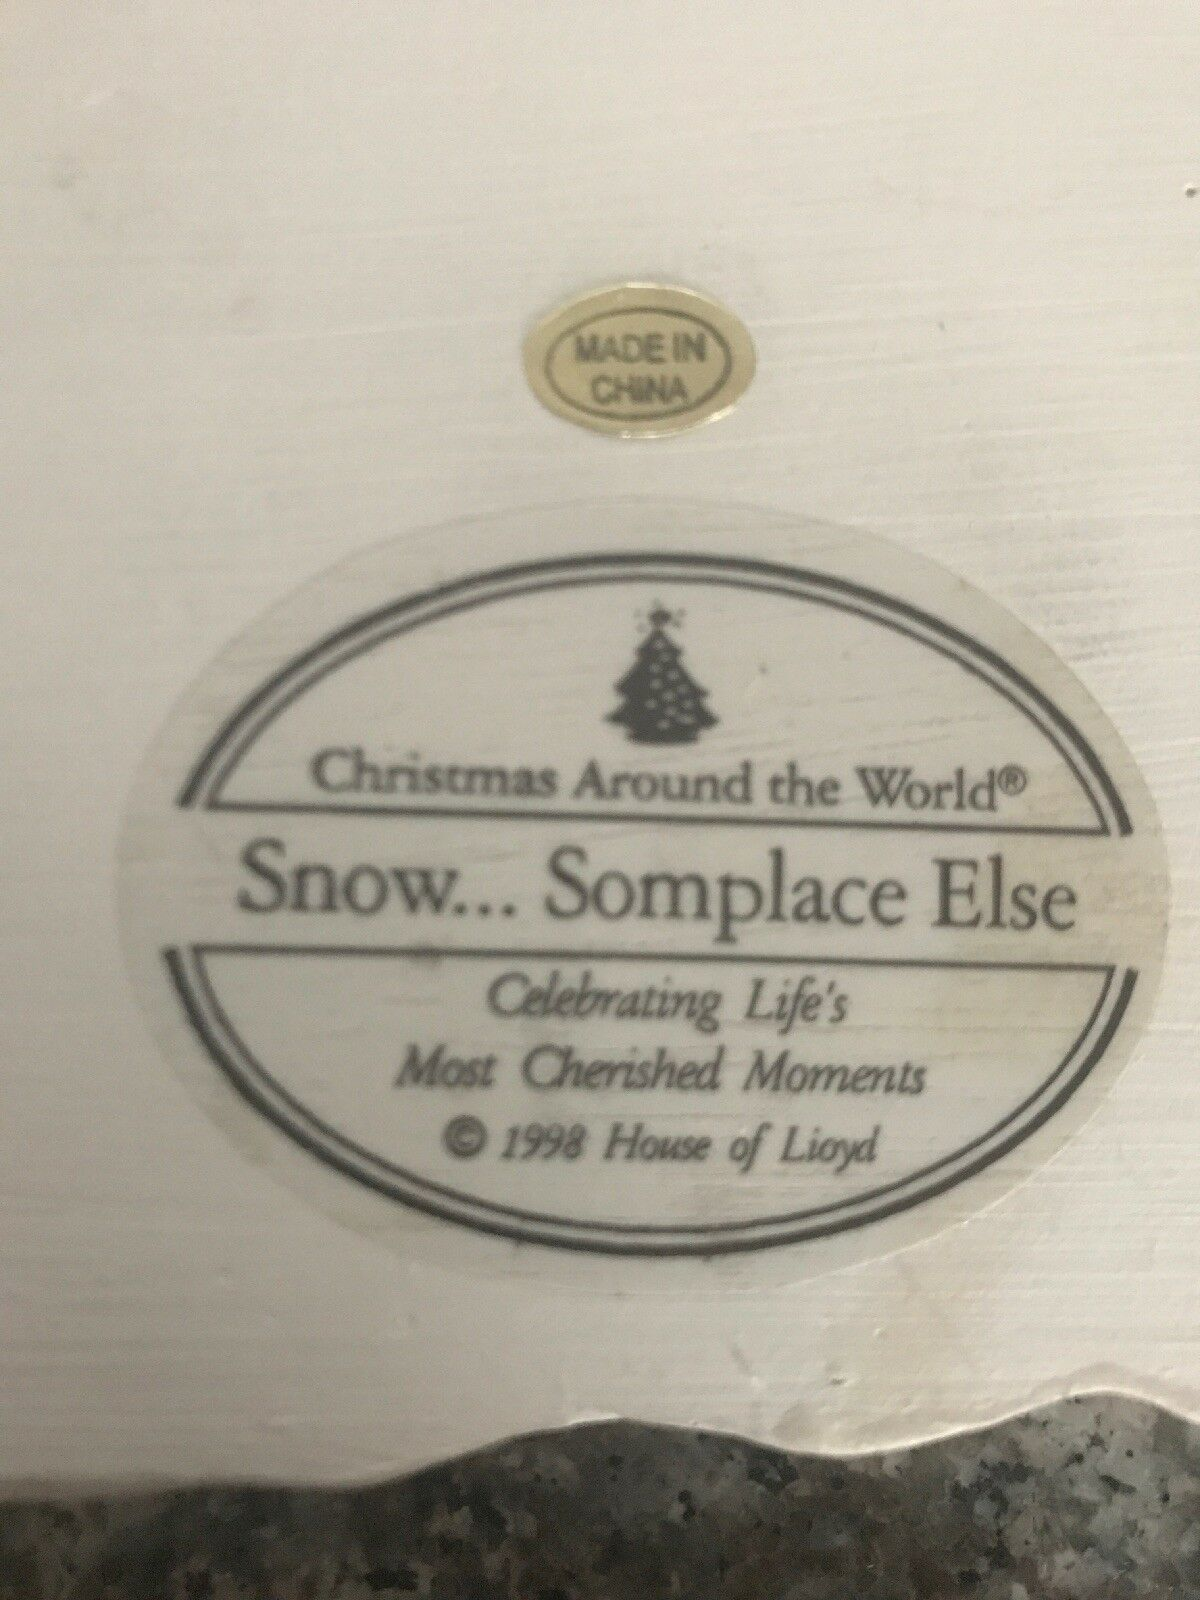 Let It Snow....Someplace Else Angel Plaque, Vintage in Box, 1998, House of Lloyd